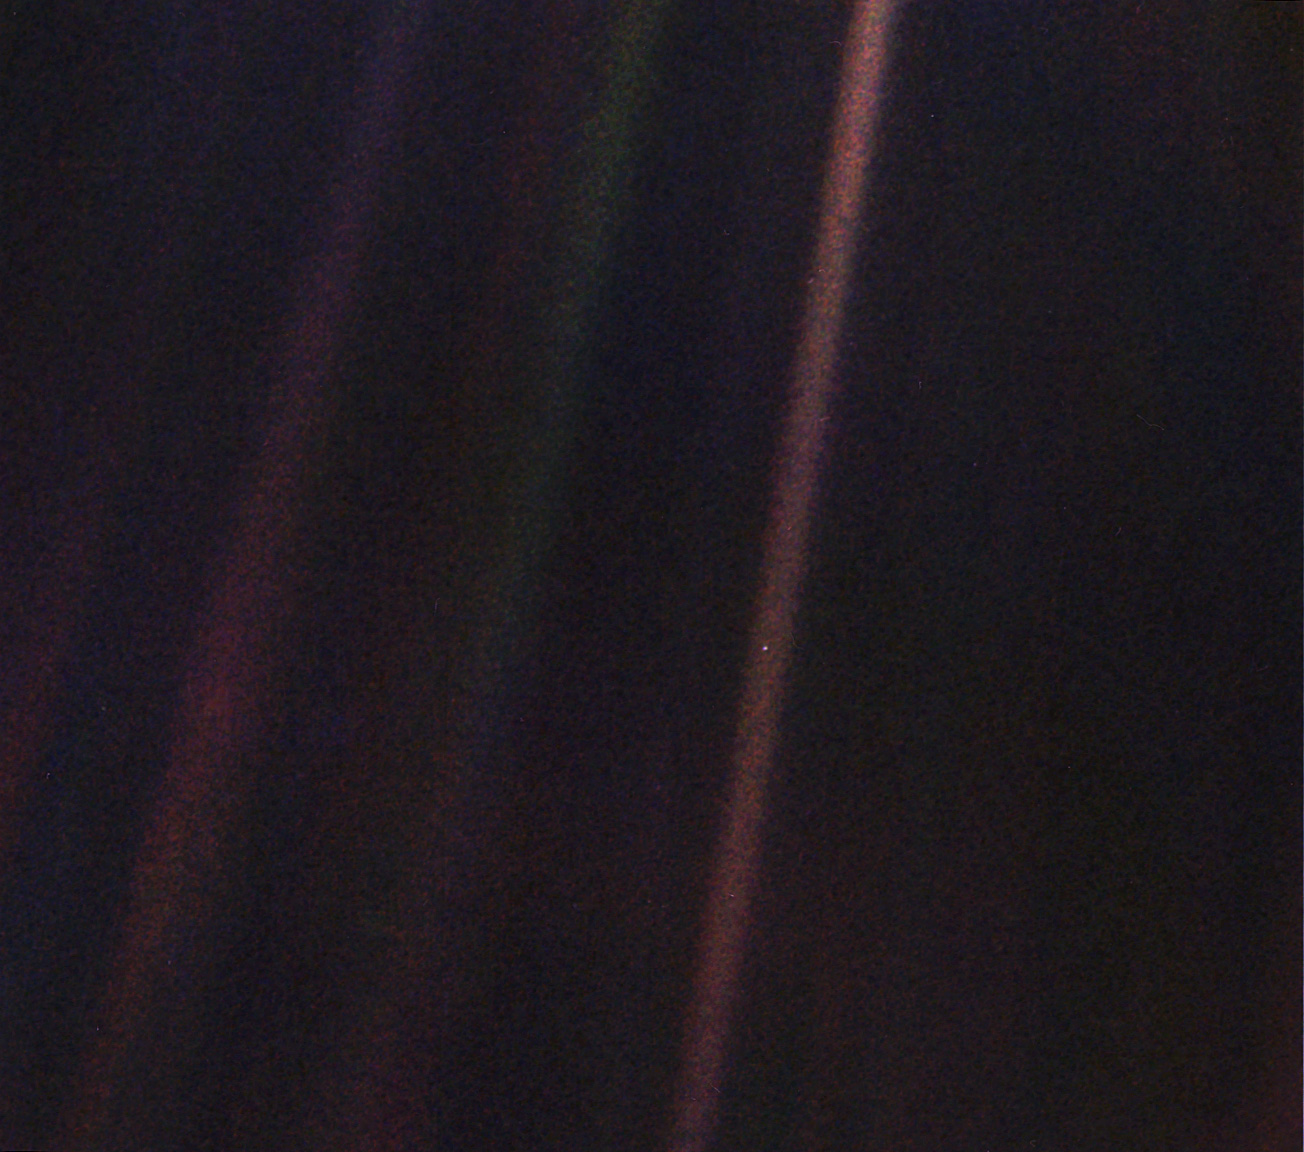 A photograph taken from the spacecraft Voyager as it turns to face Earth one final time. In this photo, Earth is a tiny speck of light, hanging in the void.